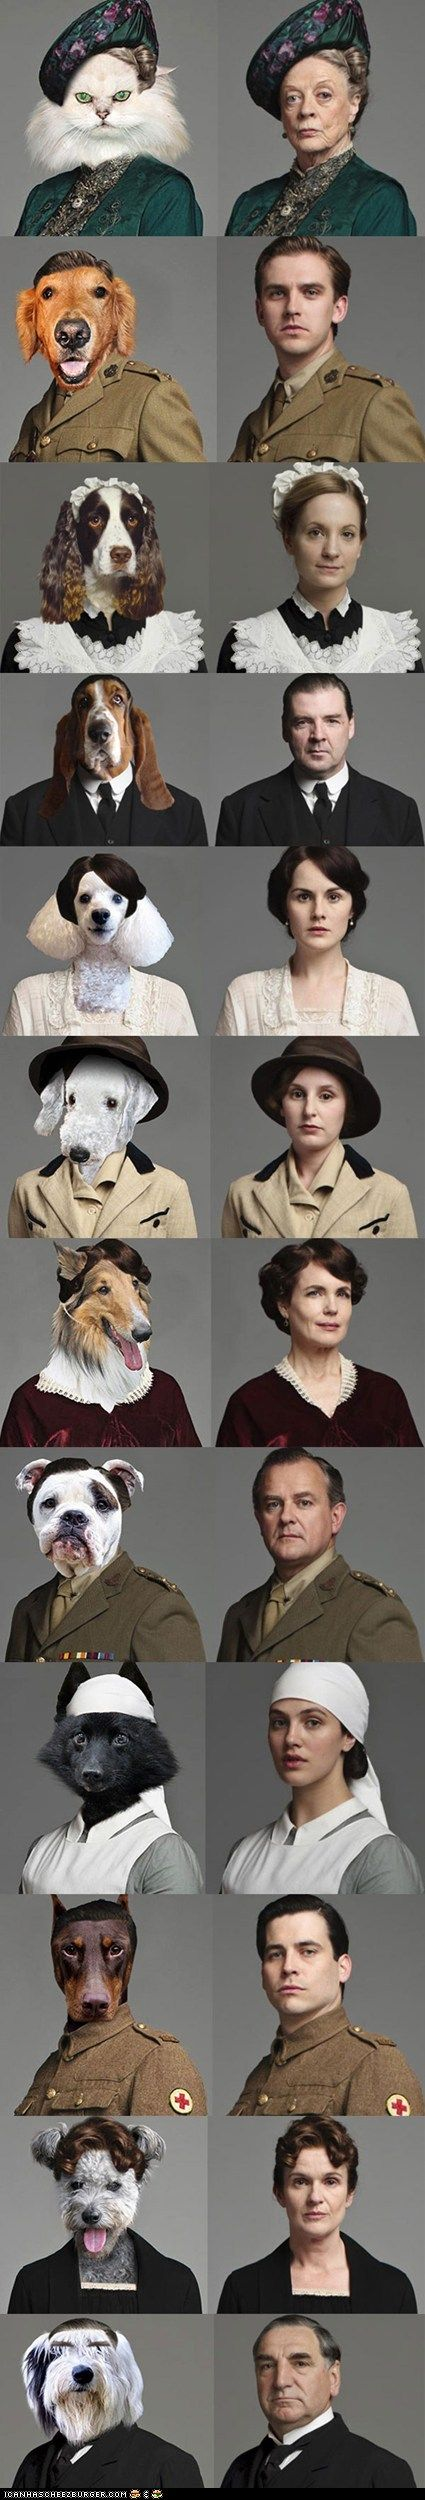 the cast of Downton Abby as cats and dogs-spot on.